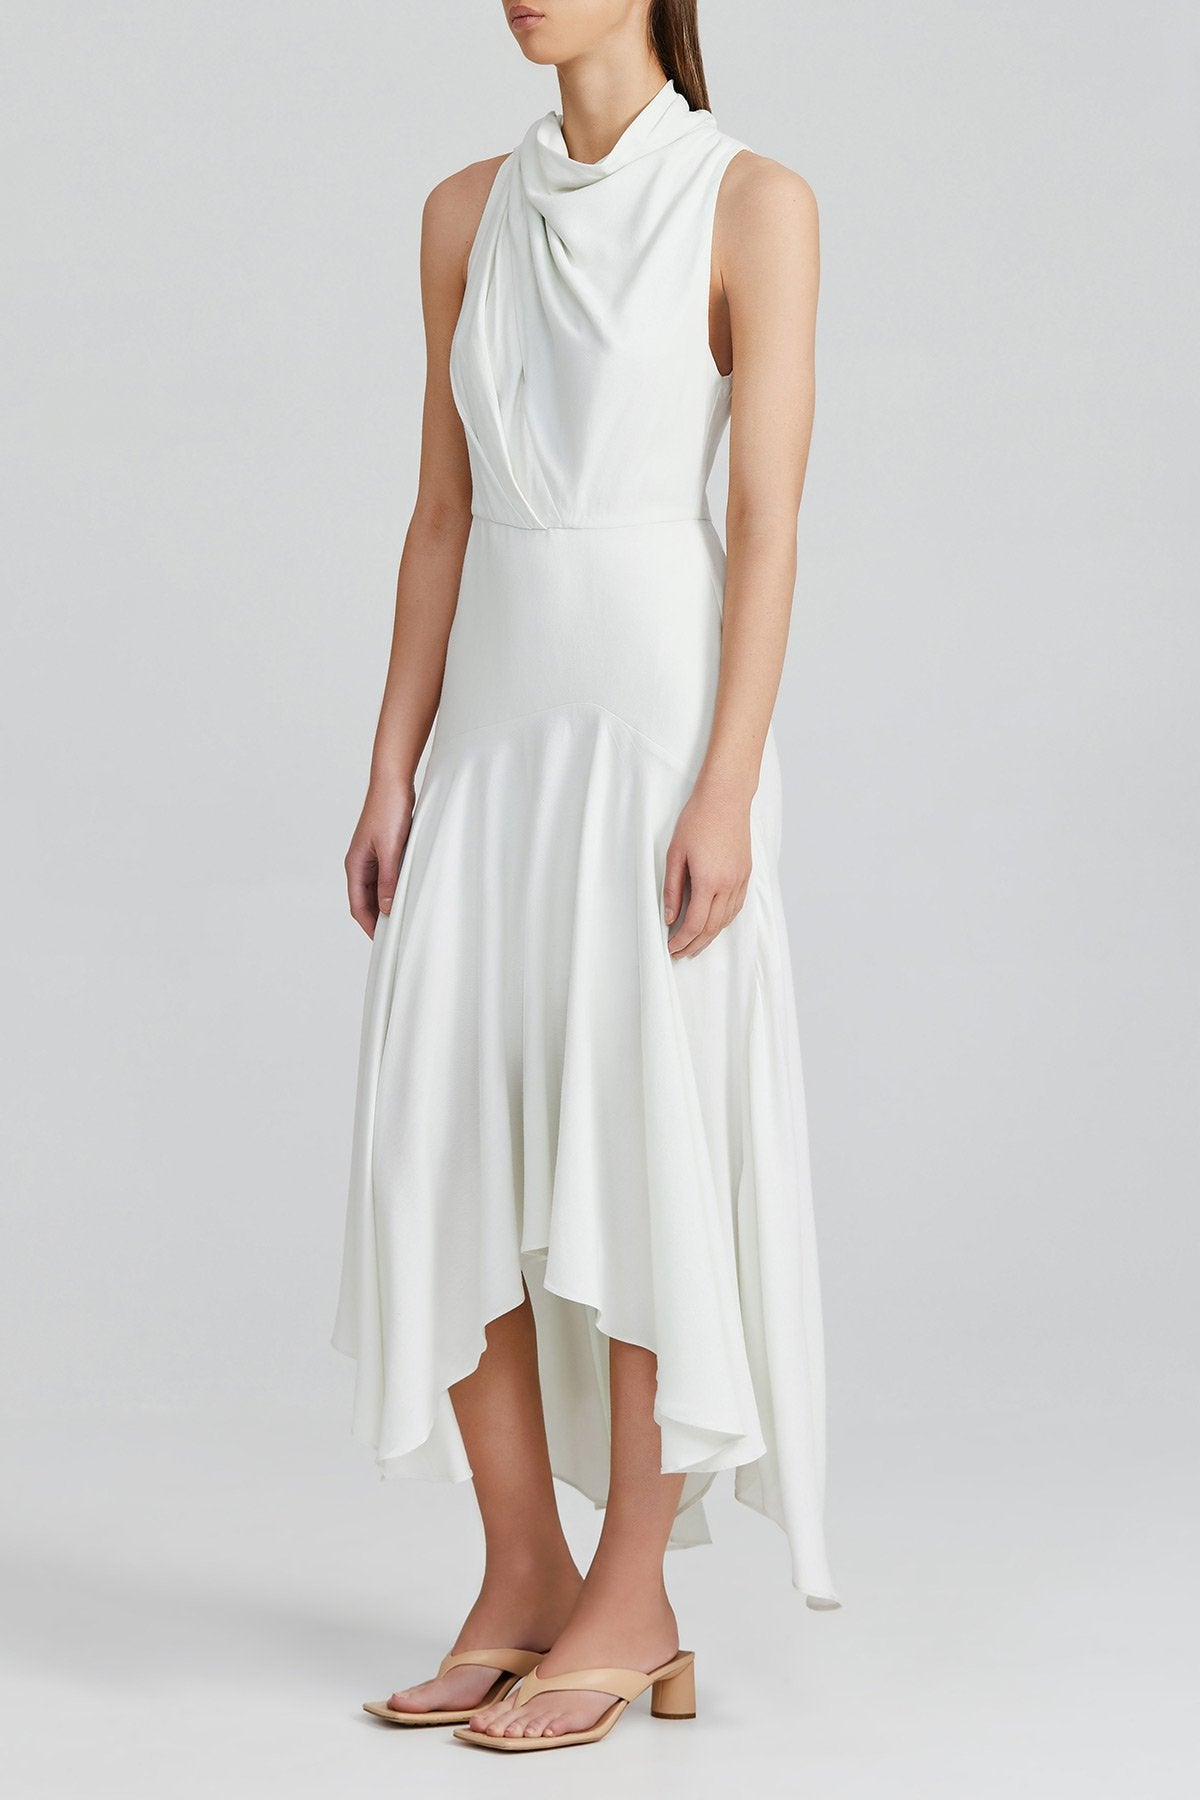 Acler Kilmaine Dress in Mist